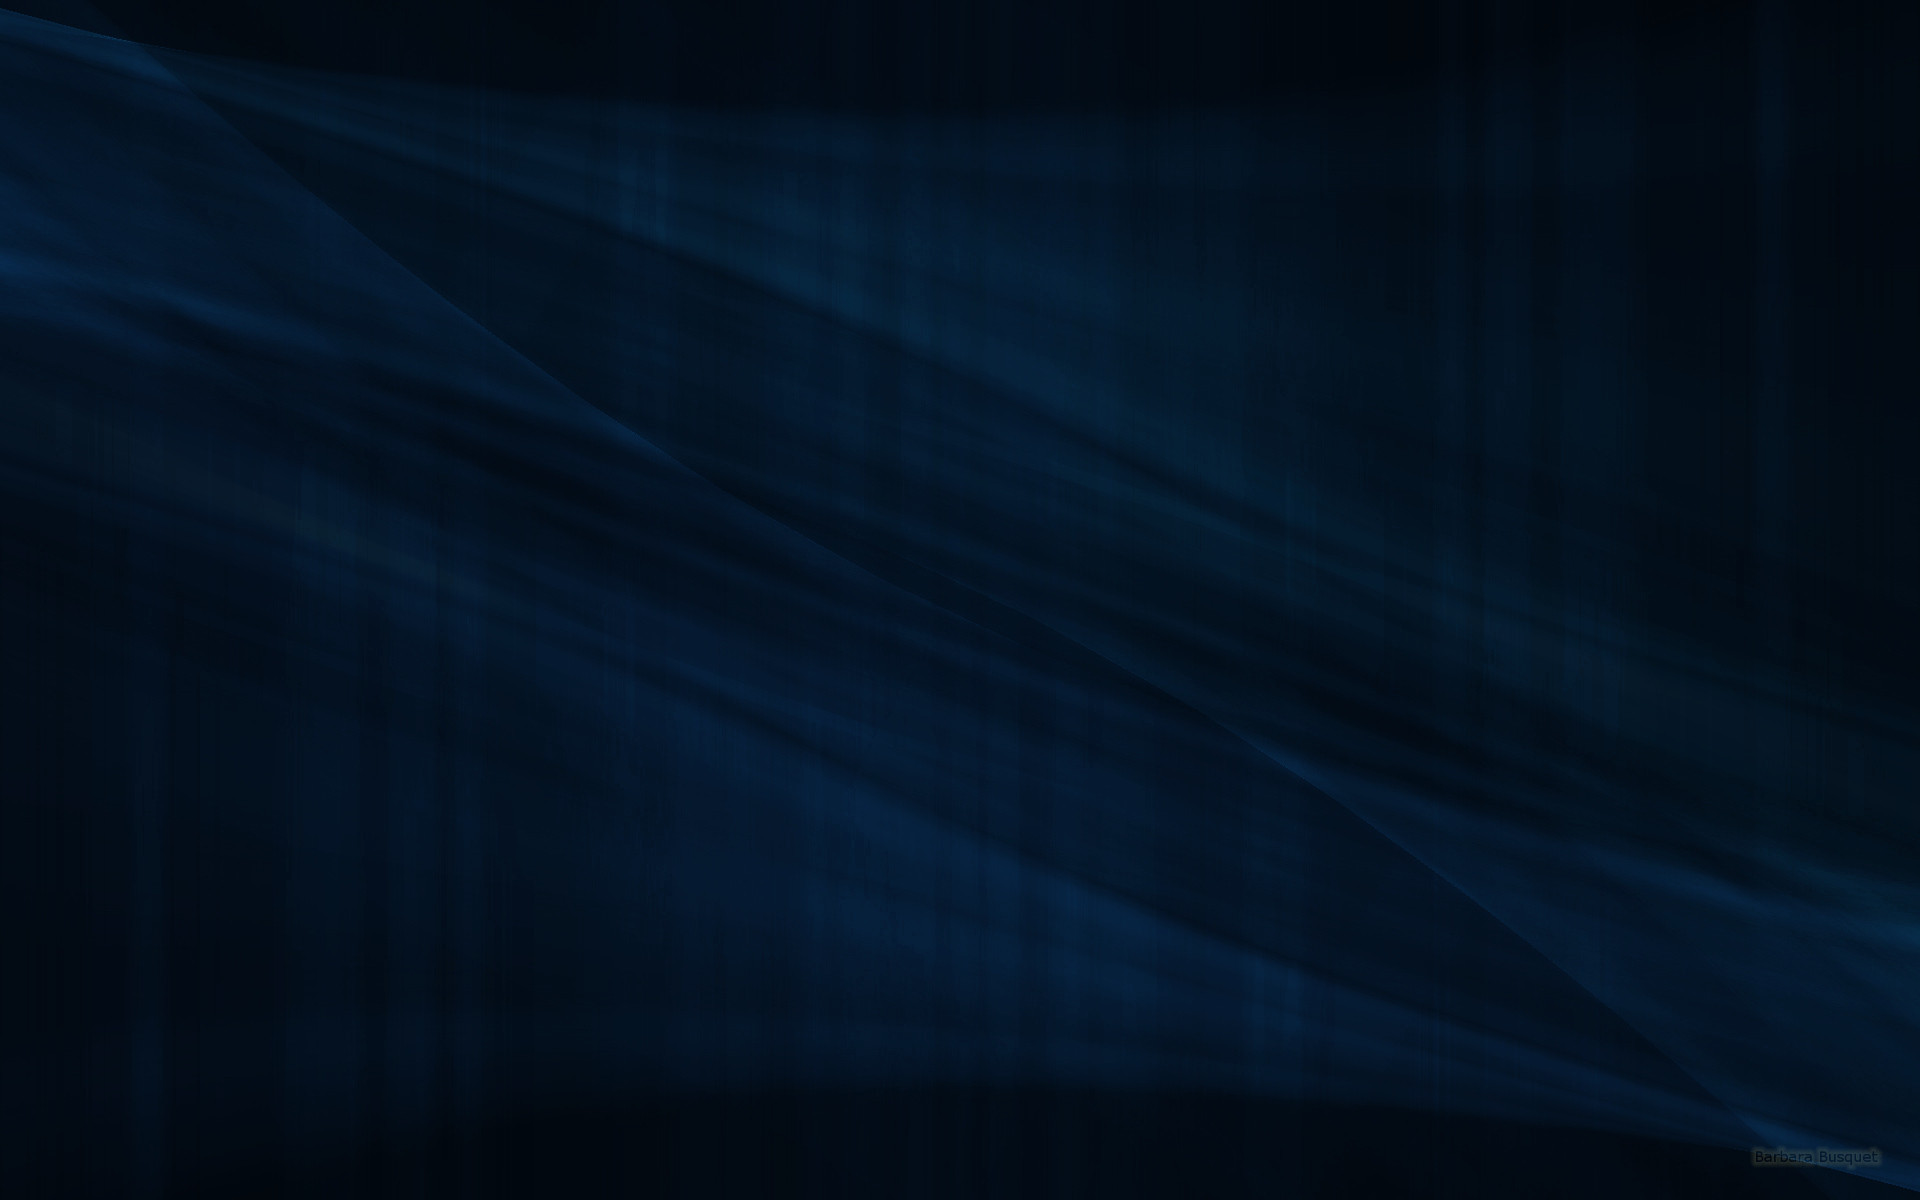 Dark Blue Abstract Wallpaper (70+ images)